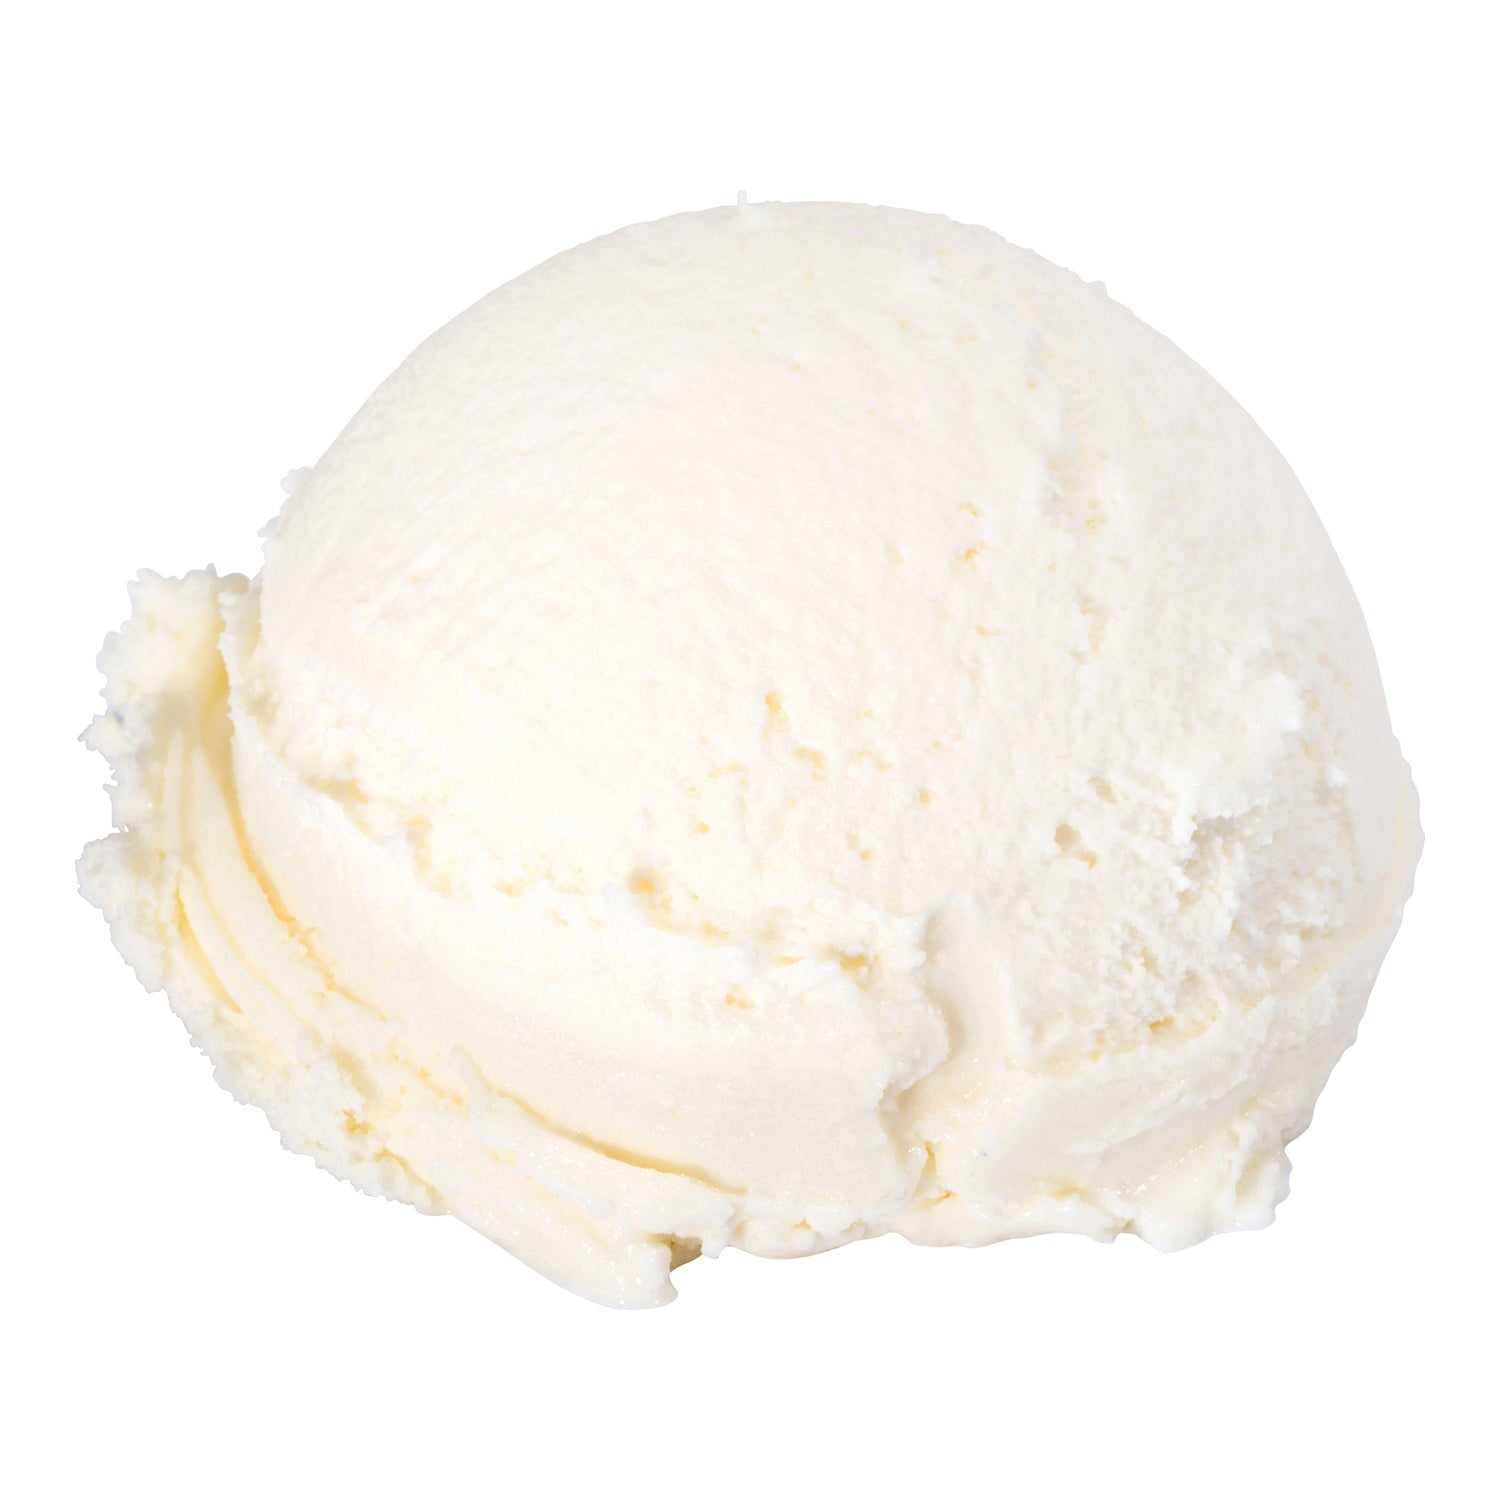 Wholesome Farms Vanilla Ice Cream 4 L - 2 Pack [$3.25/litre]